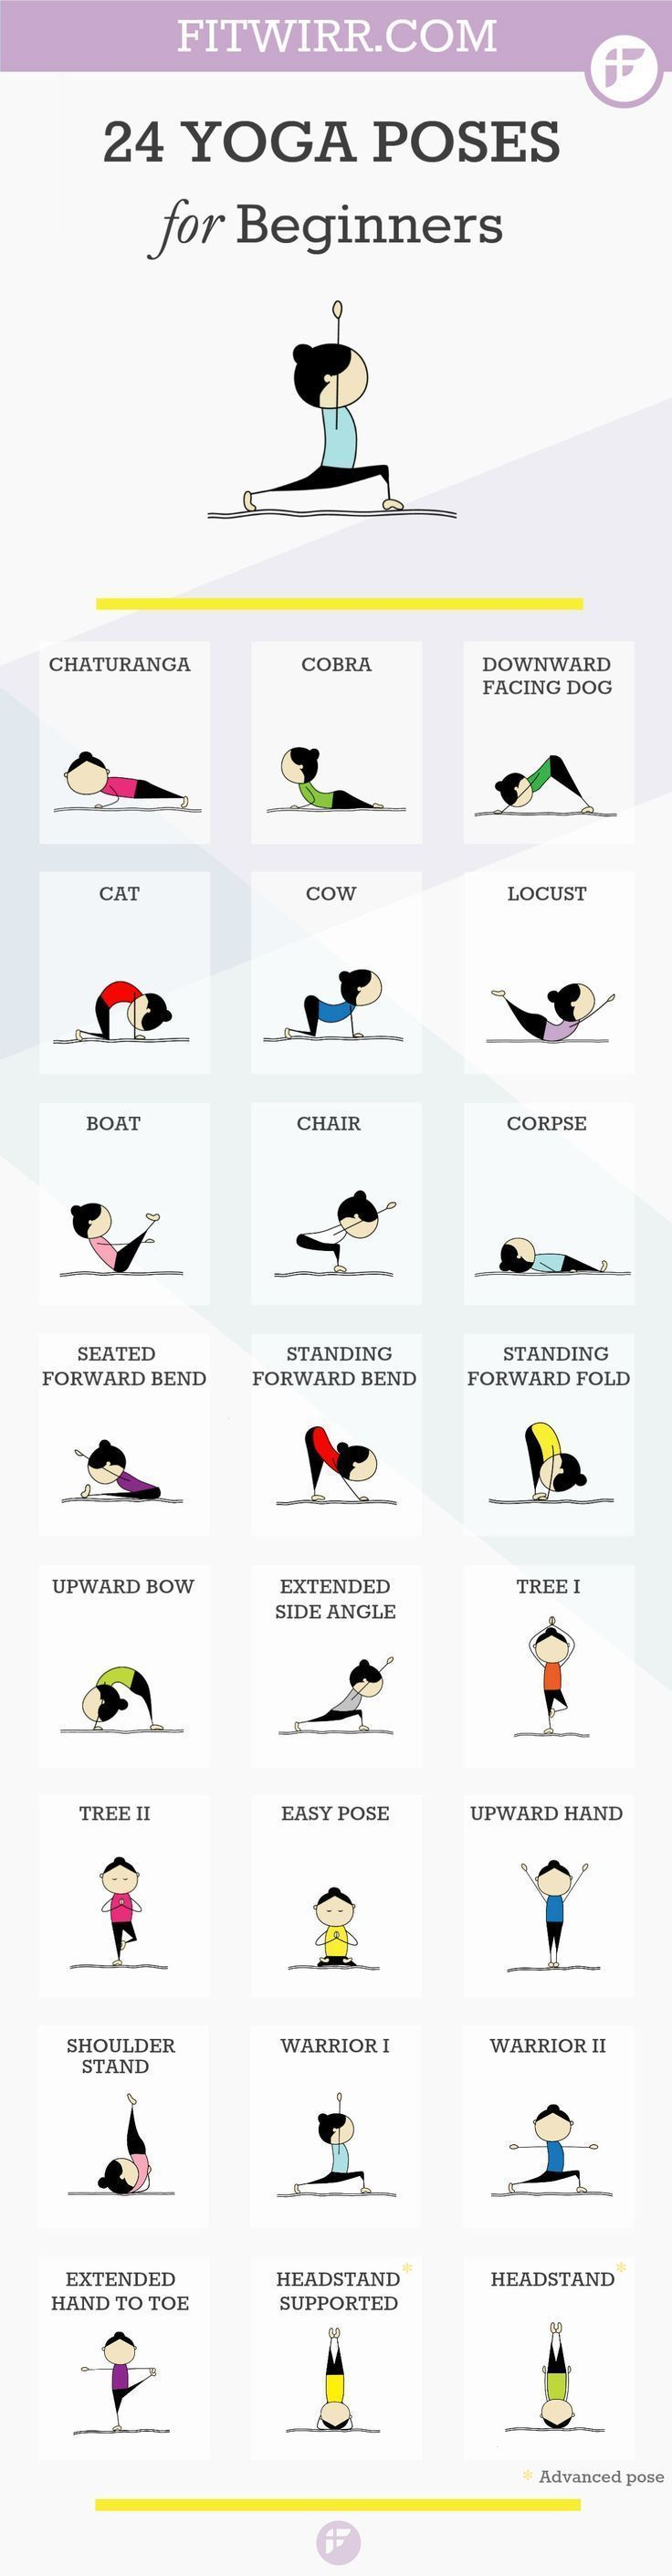 24 Yoga Poses For Beginners Namaste Meditation Health More